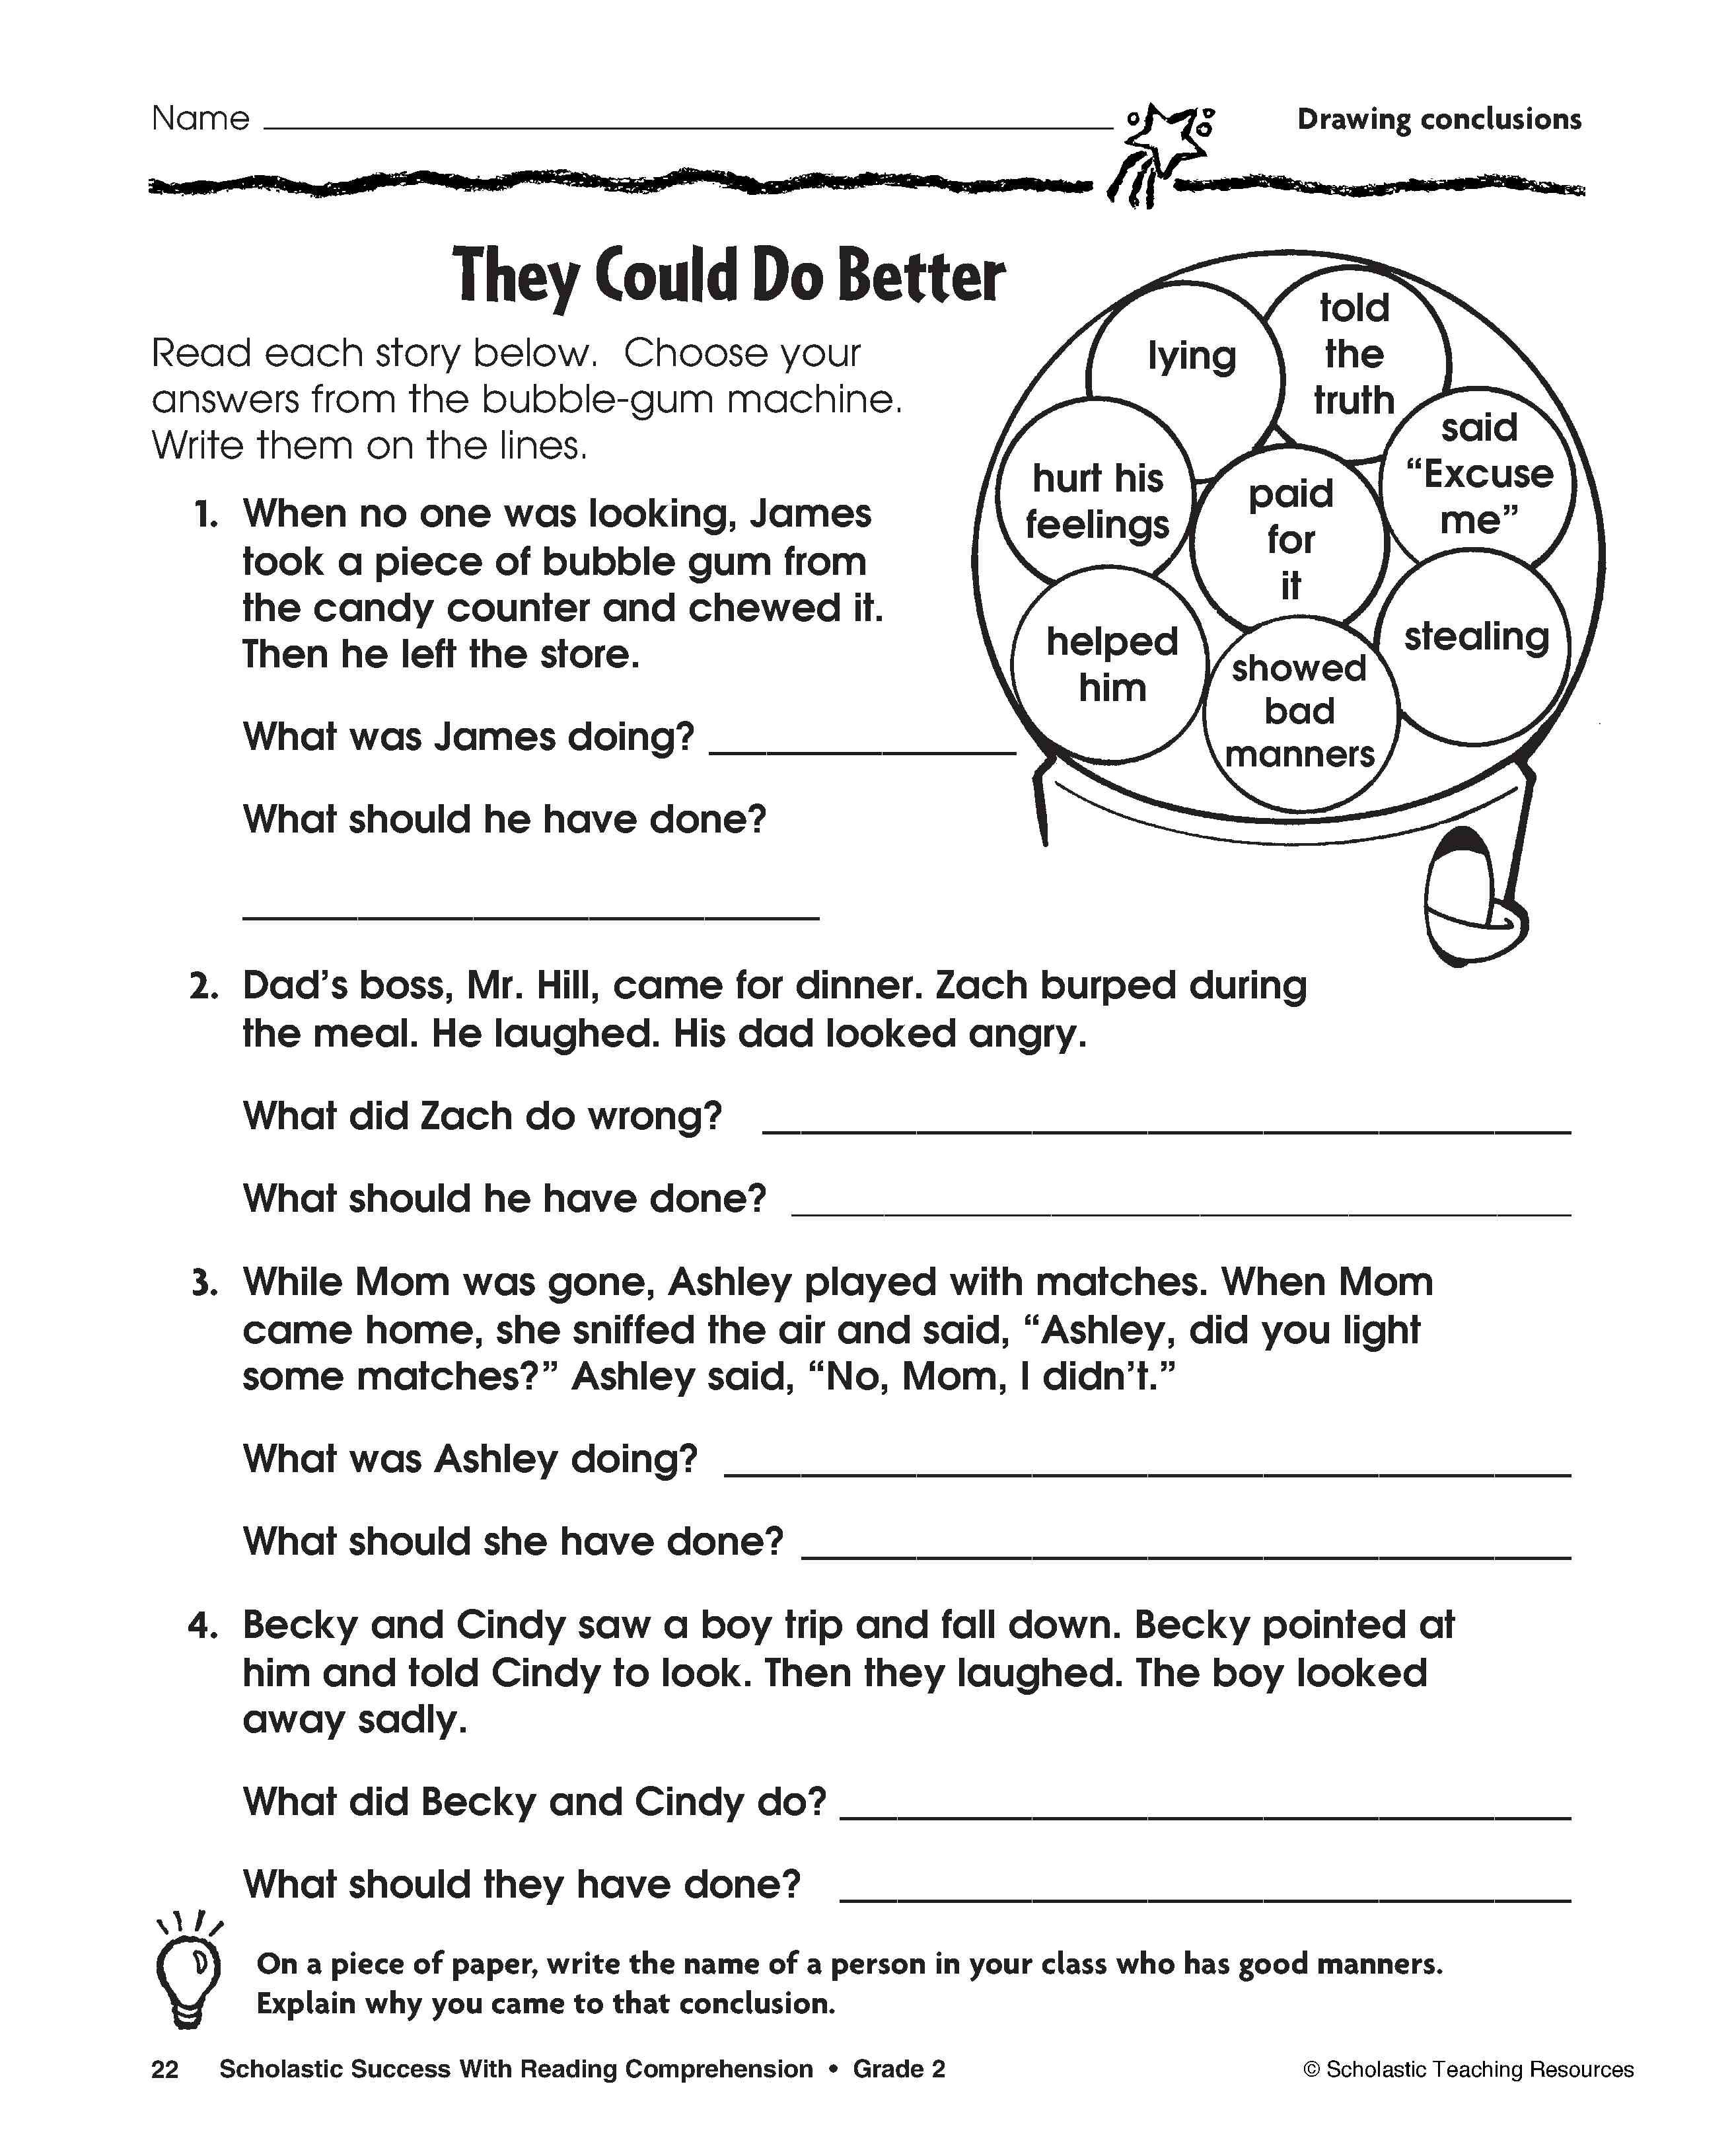 80 Best Drawing Conclusions Images Drawing Conclusions Teaching Reading -  Free Photos [ 3263 x 2625 Pixel ]